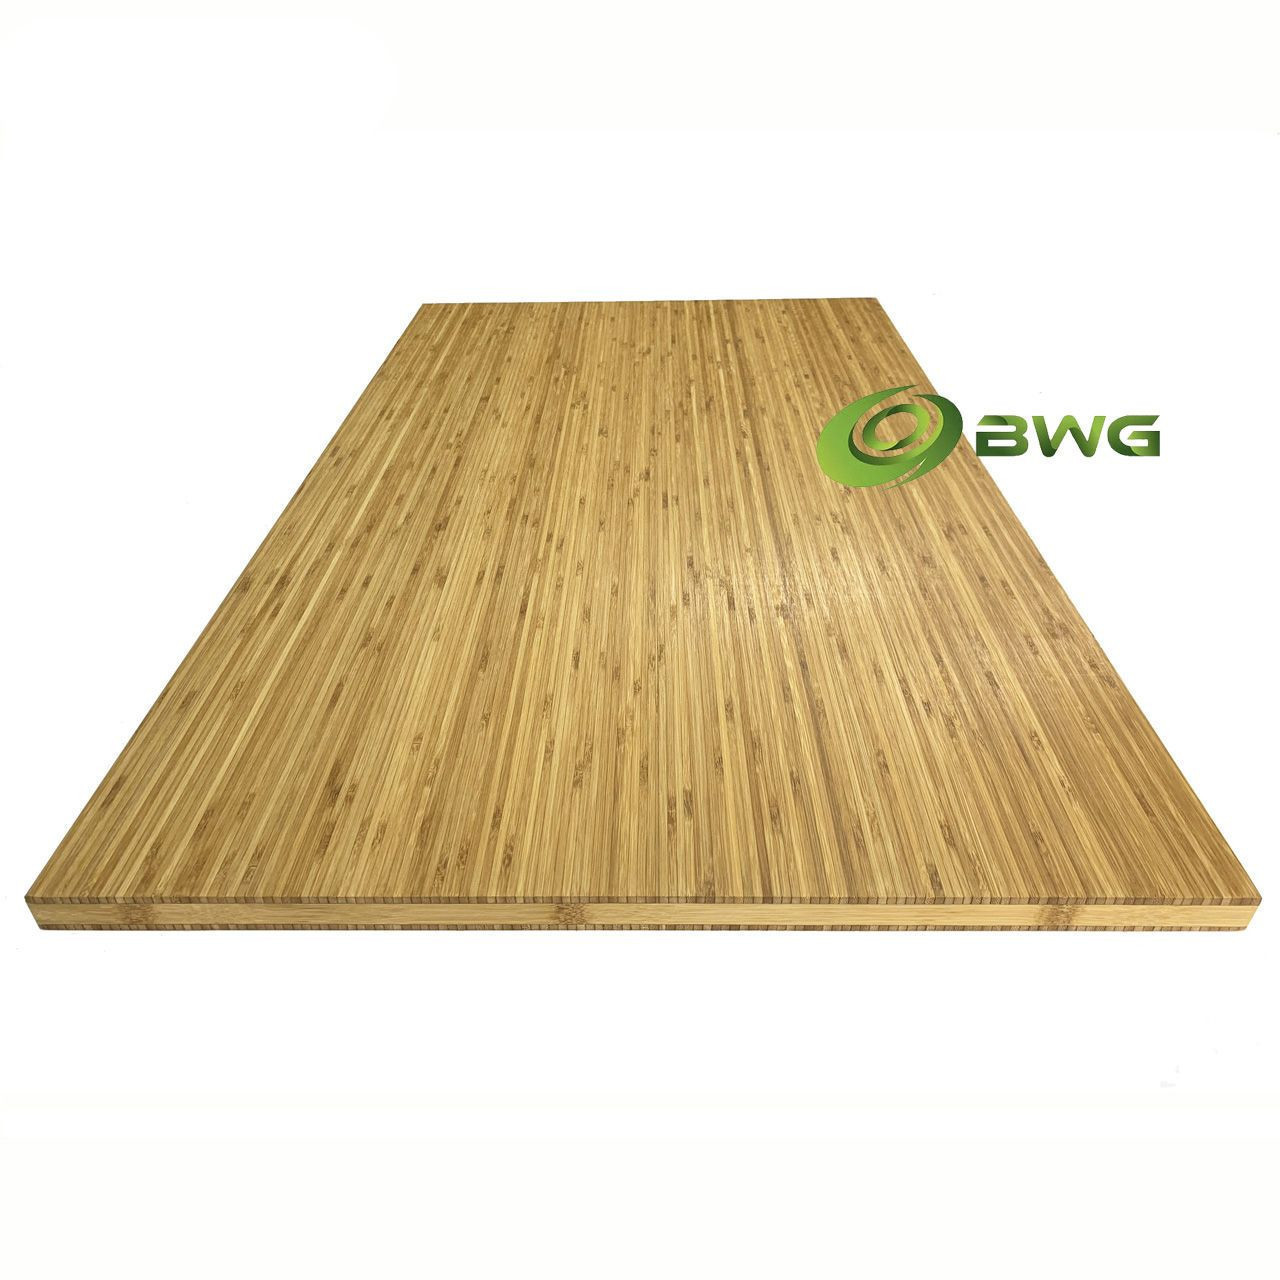 High Quality FSC Bamboo Table Tops/Countertops in Vietnam